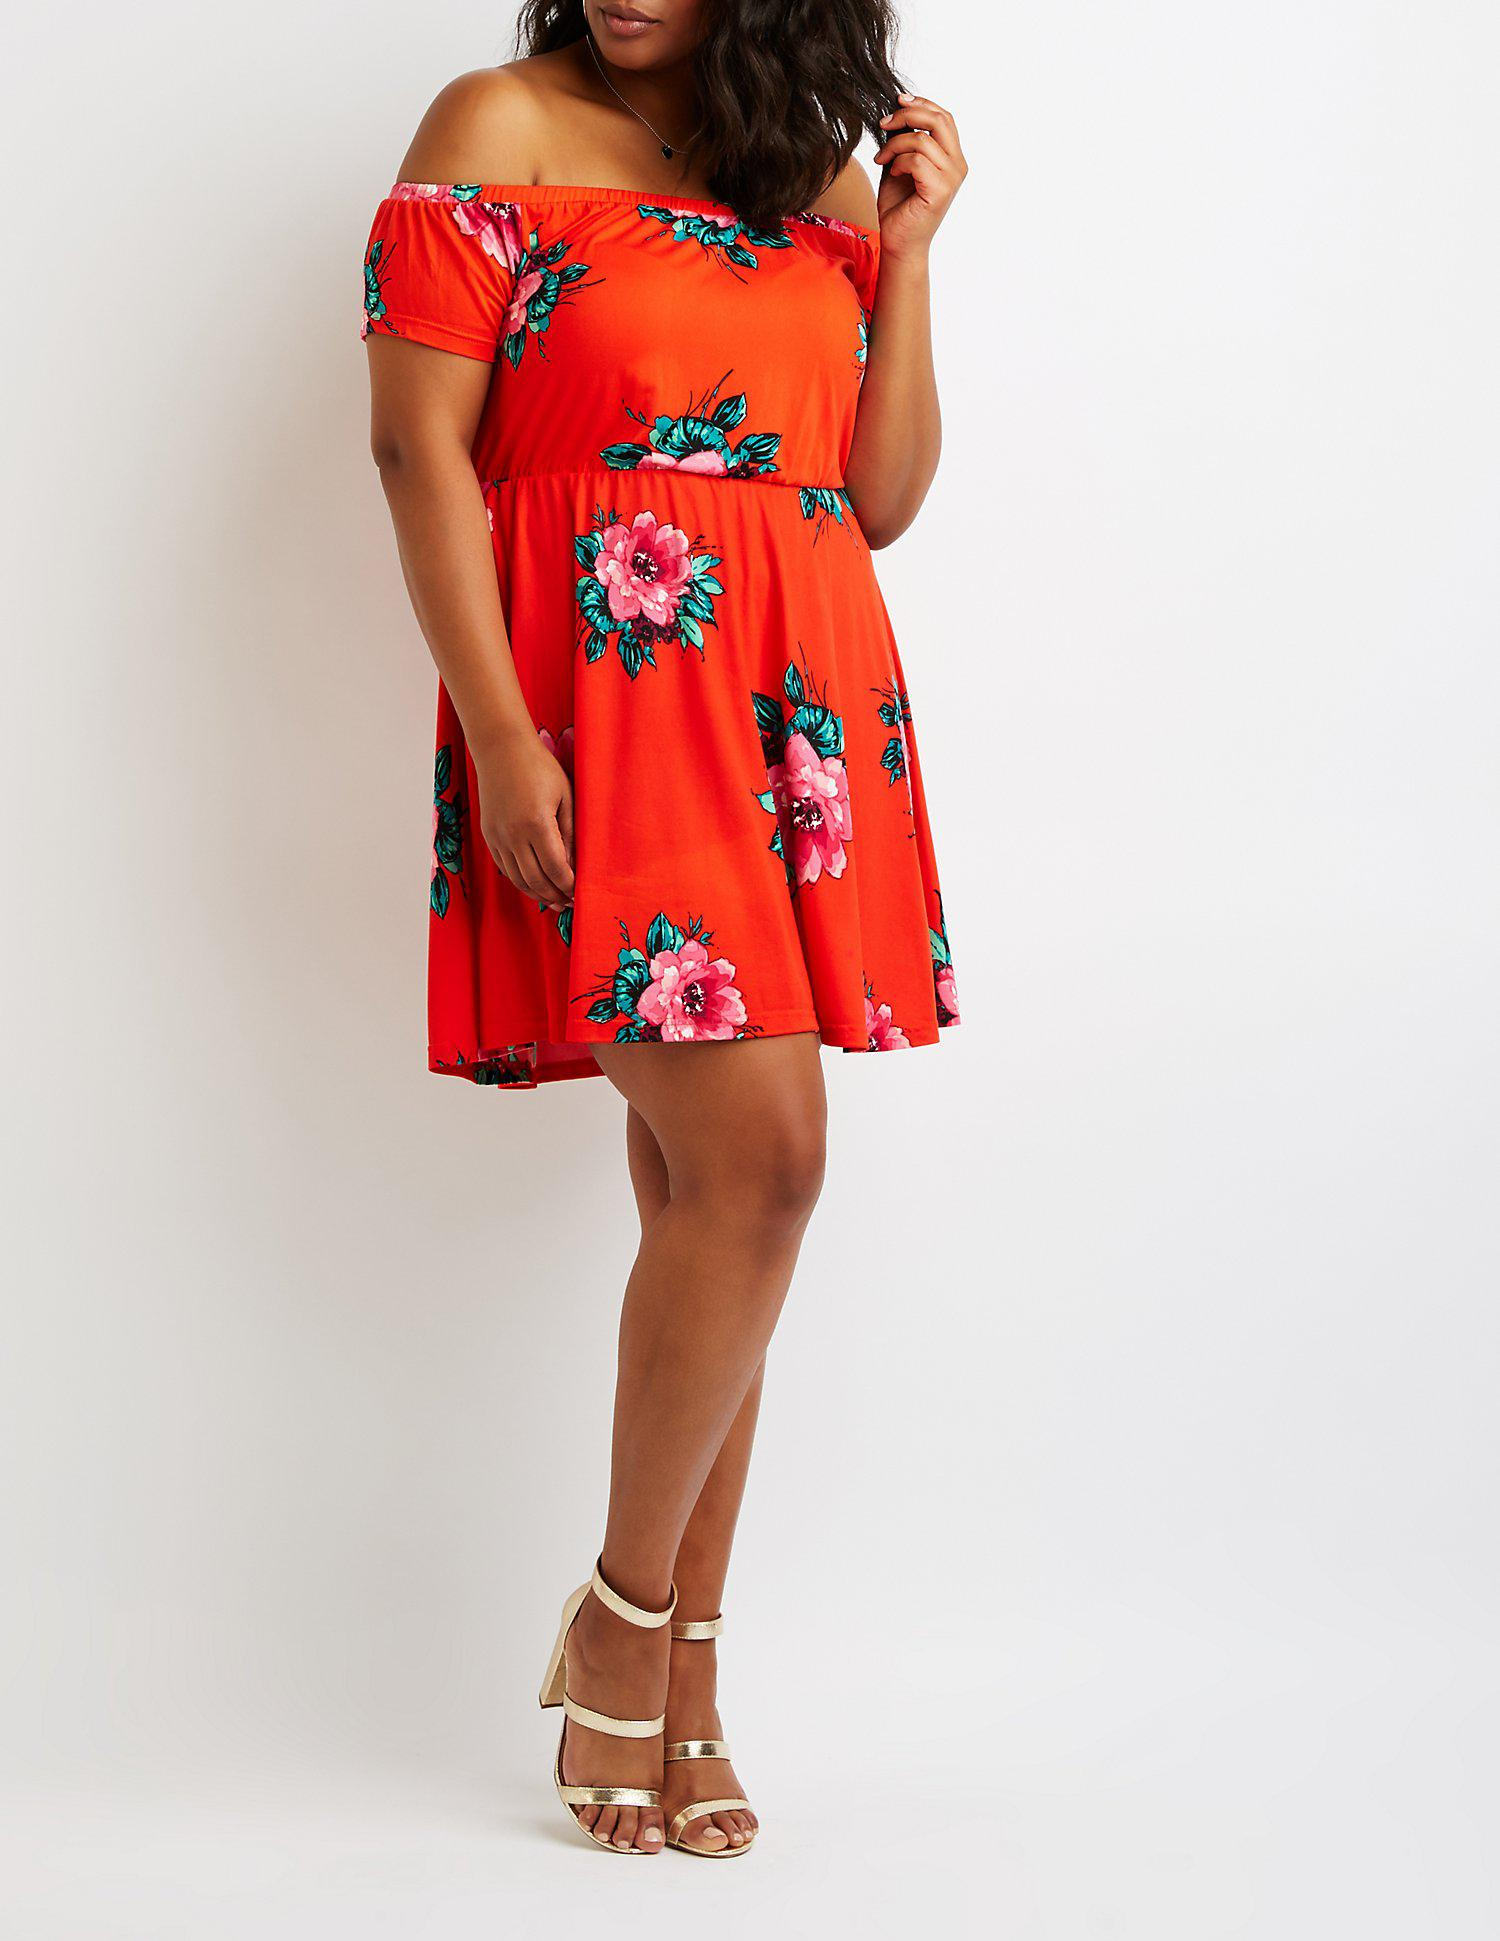 Lyst - Charlotte Russe Plus Size Floral Off The Shoulder Dress in Red